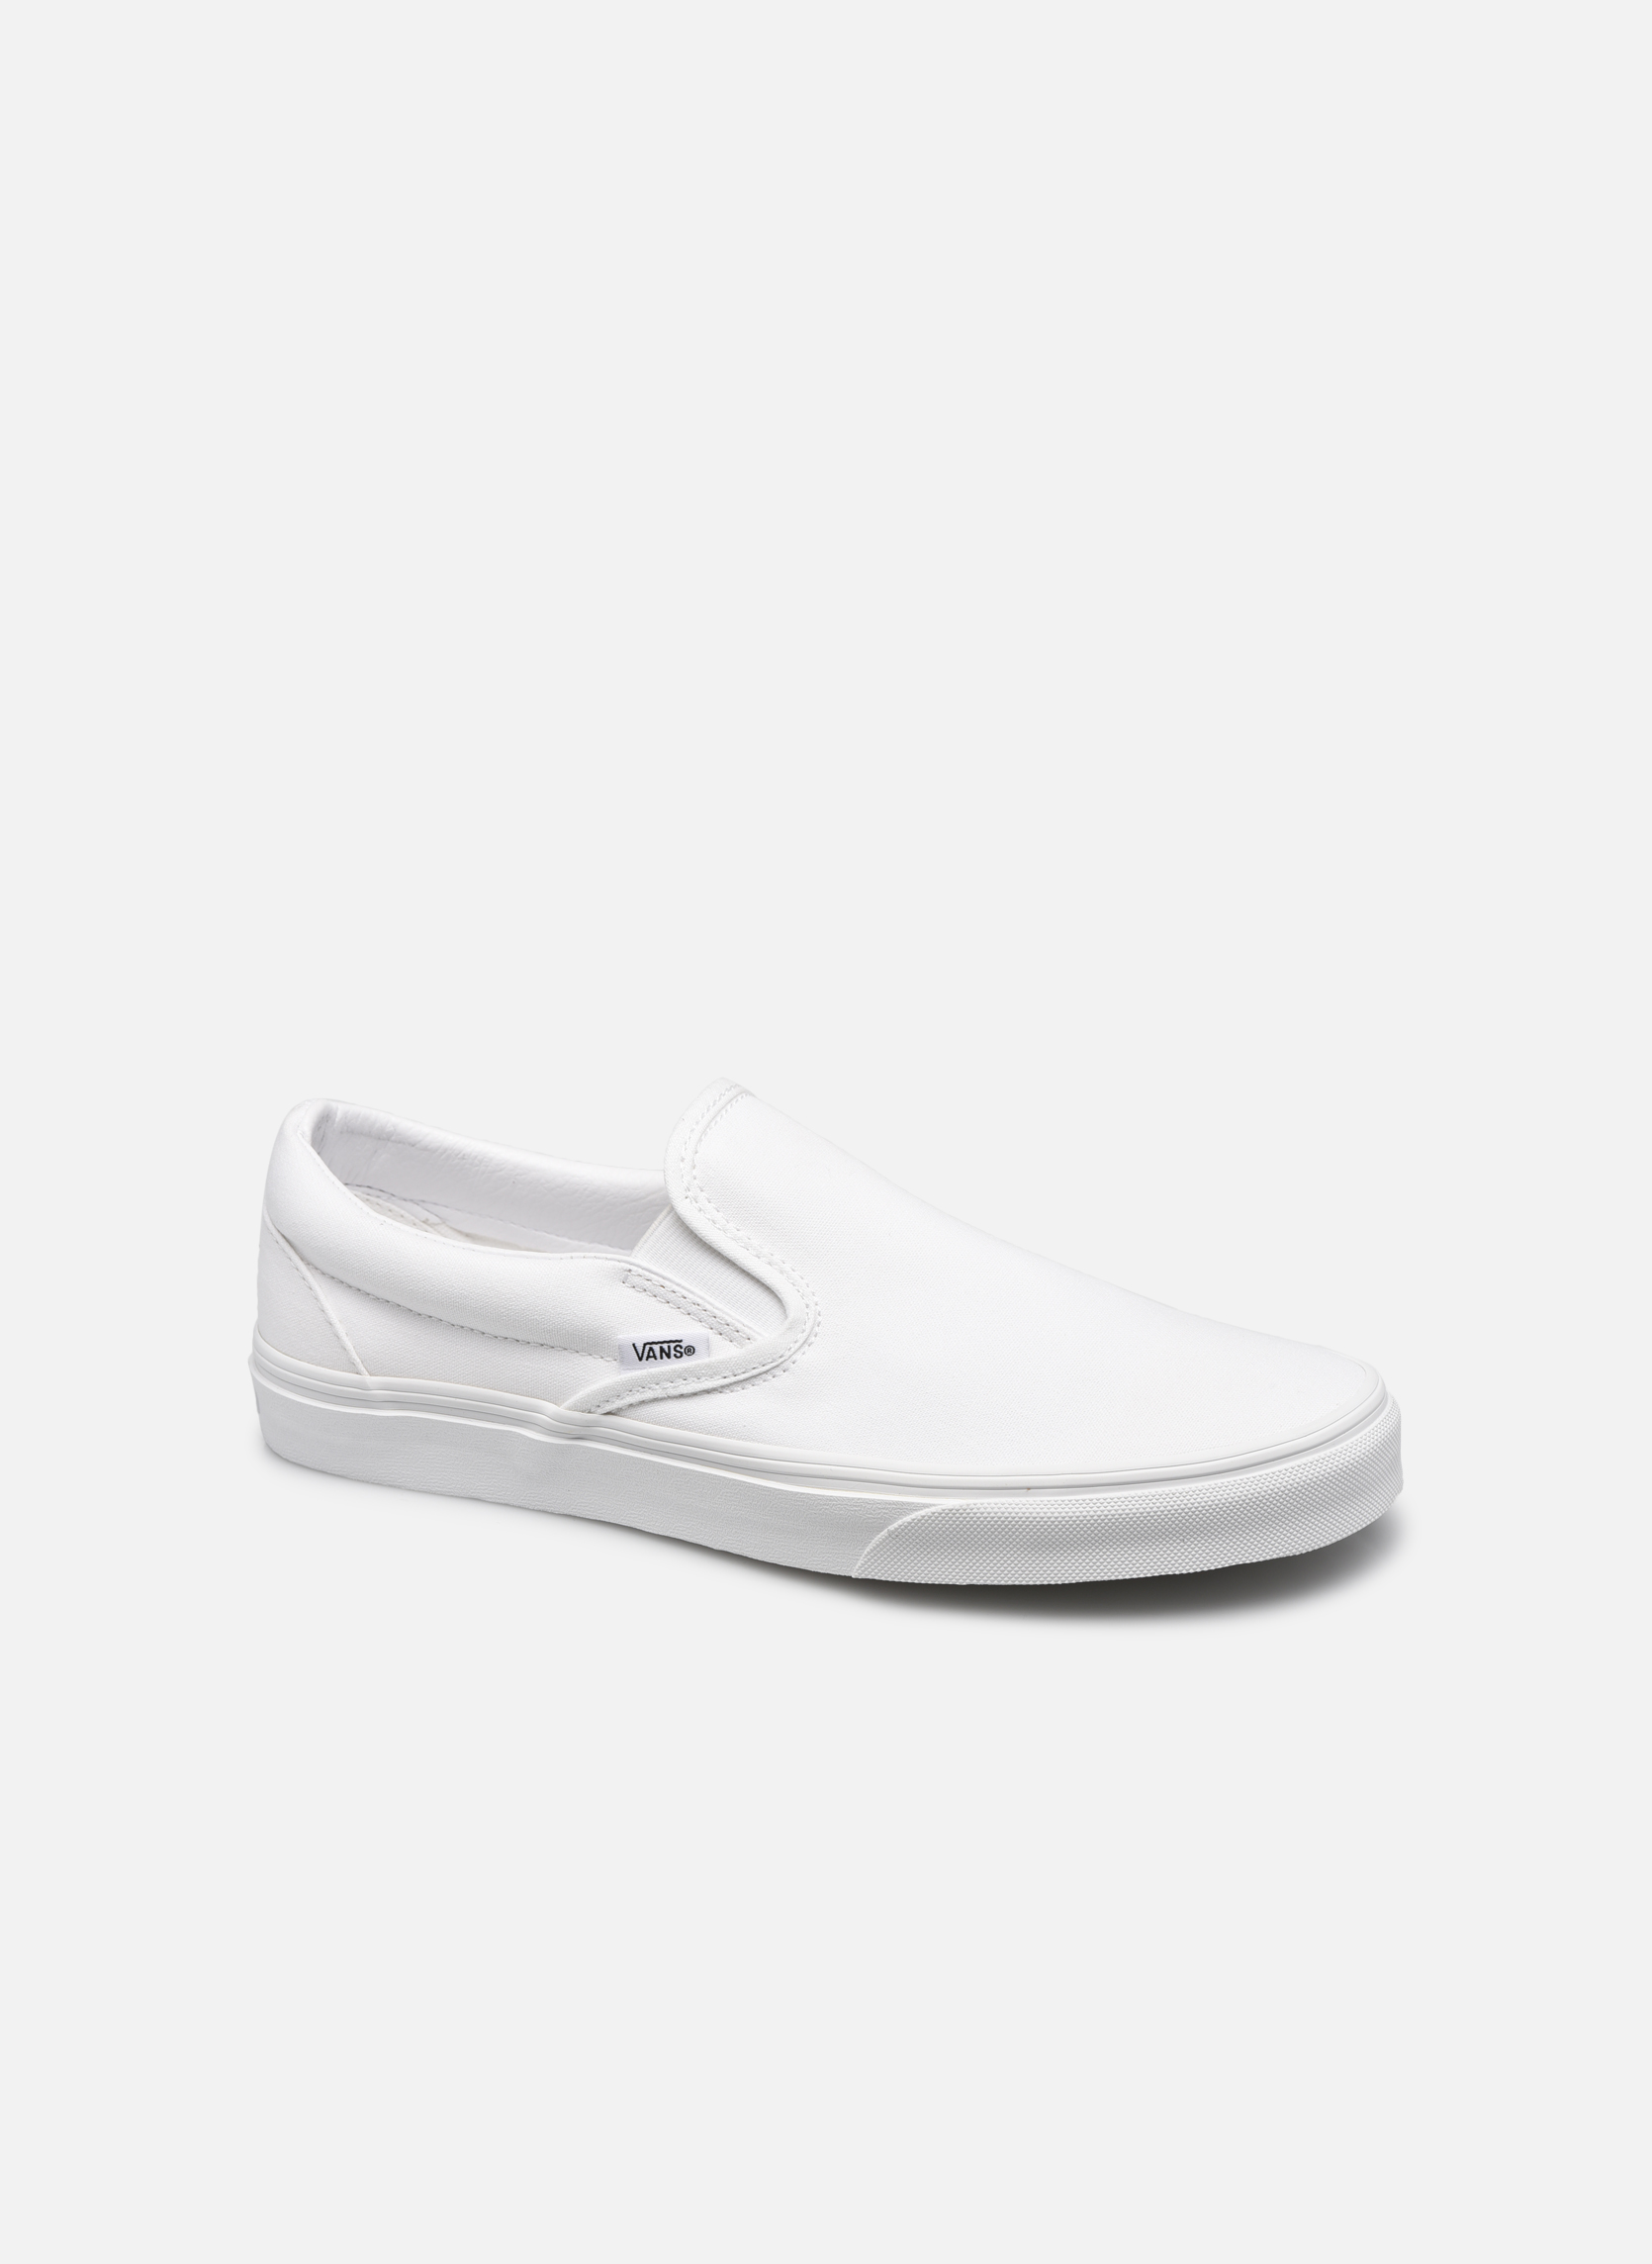 Vans Slip On blanco